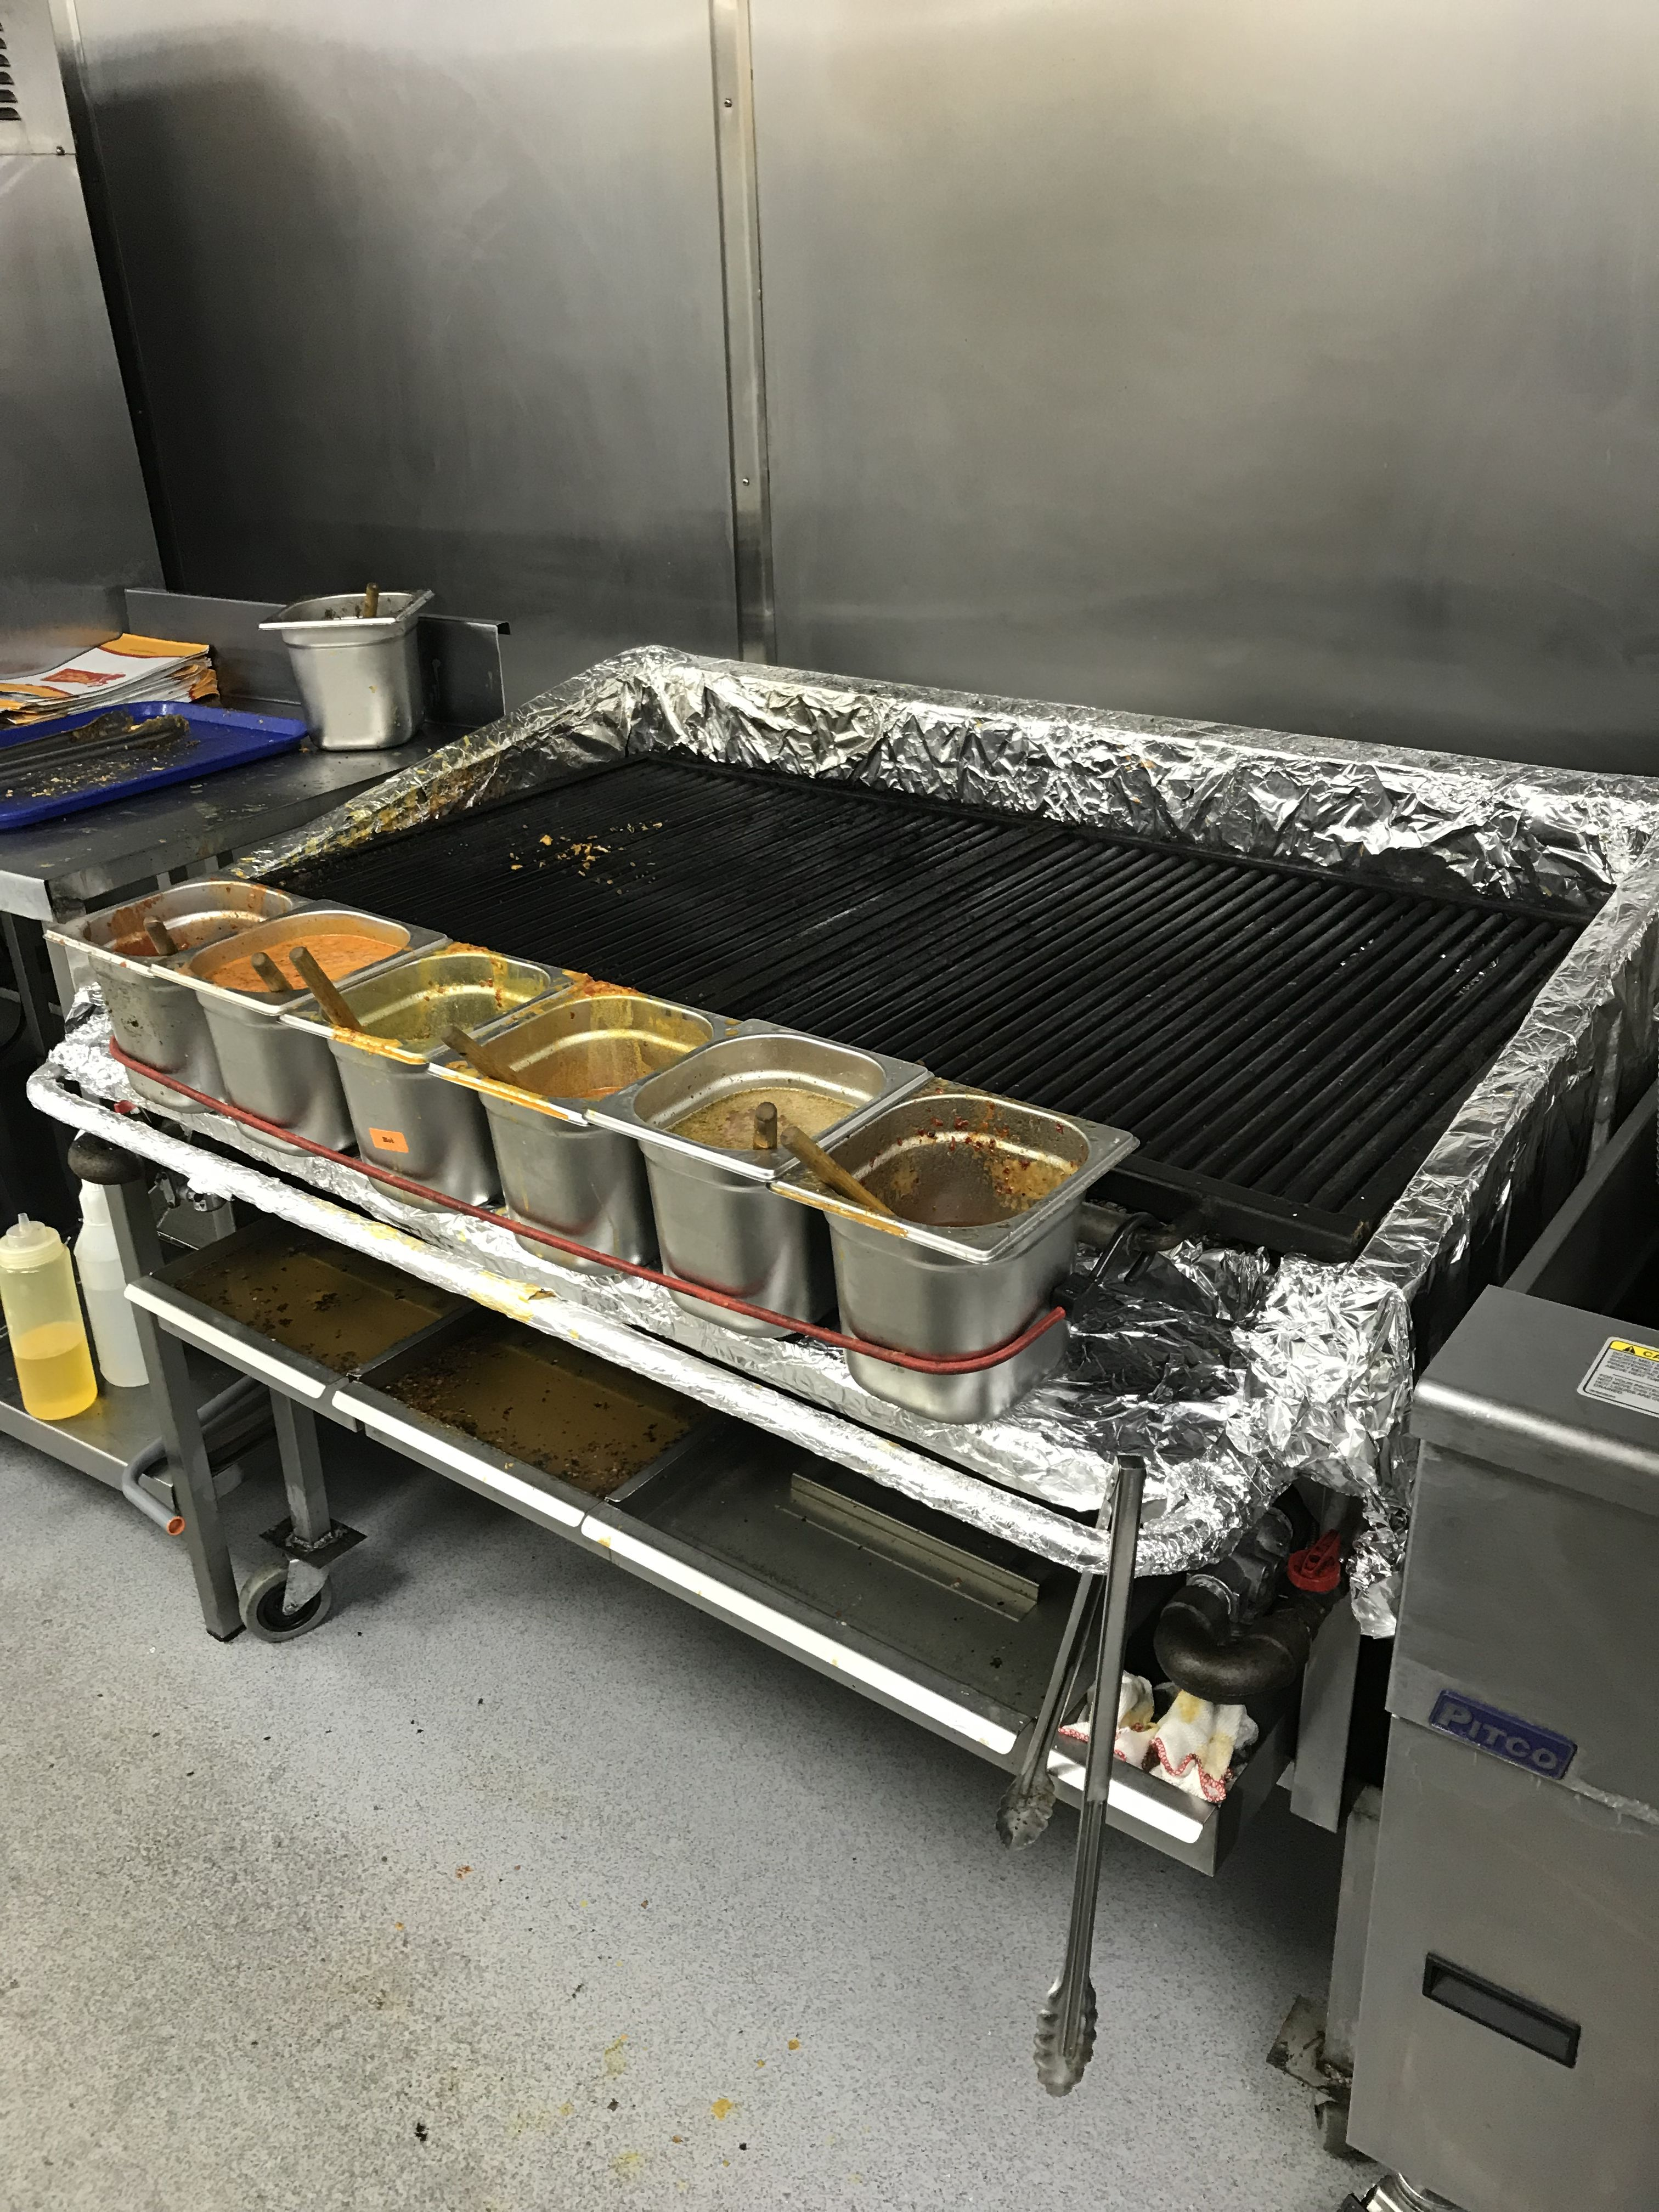 Another Pepes Piri Piri In Shirley Birmingham Equipped By